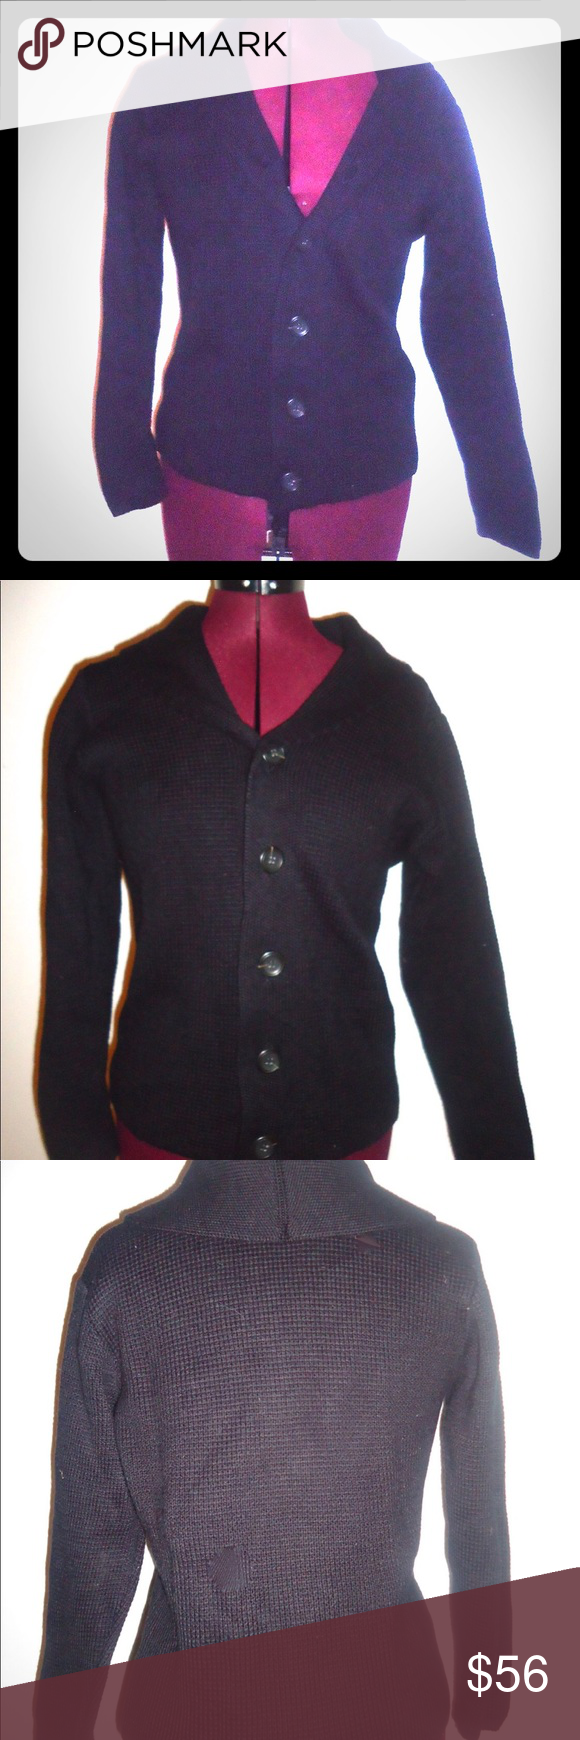 Black Cardigan Sweater Made in Italy Emozioni Uomo Vintage High ...